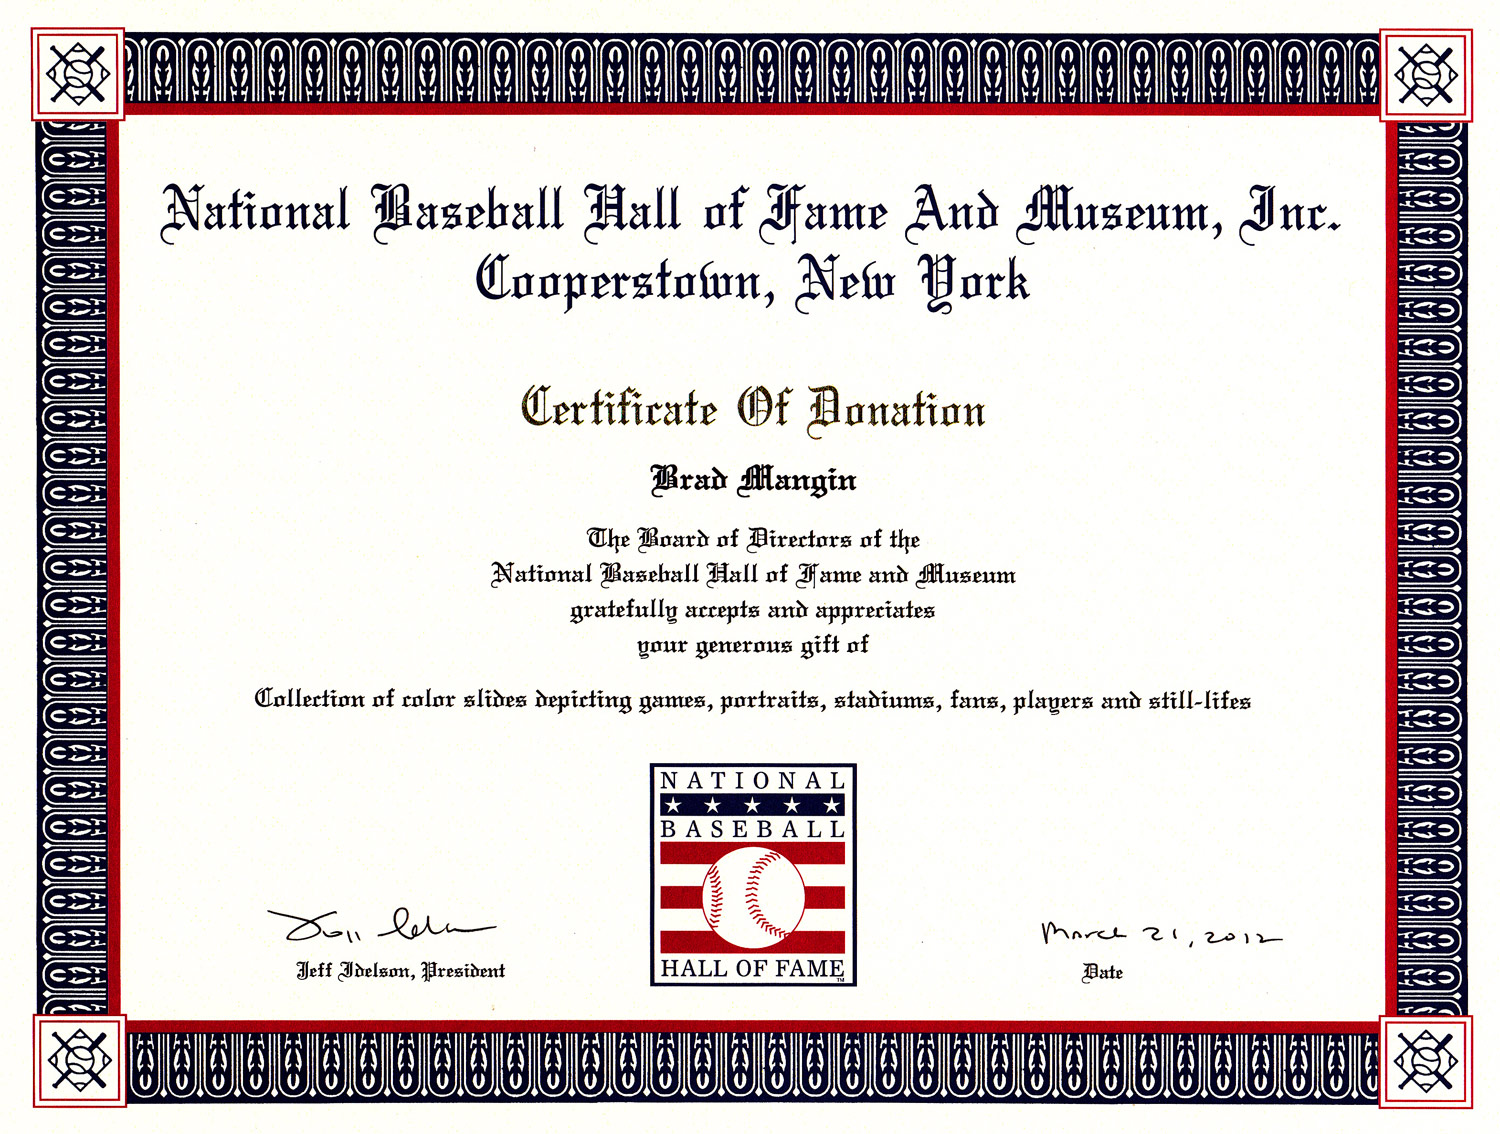 Donation to Baseball Hall of Fame fulfills dream - Mangin ...